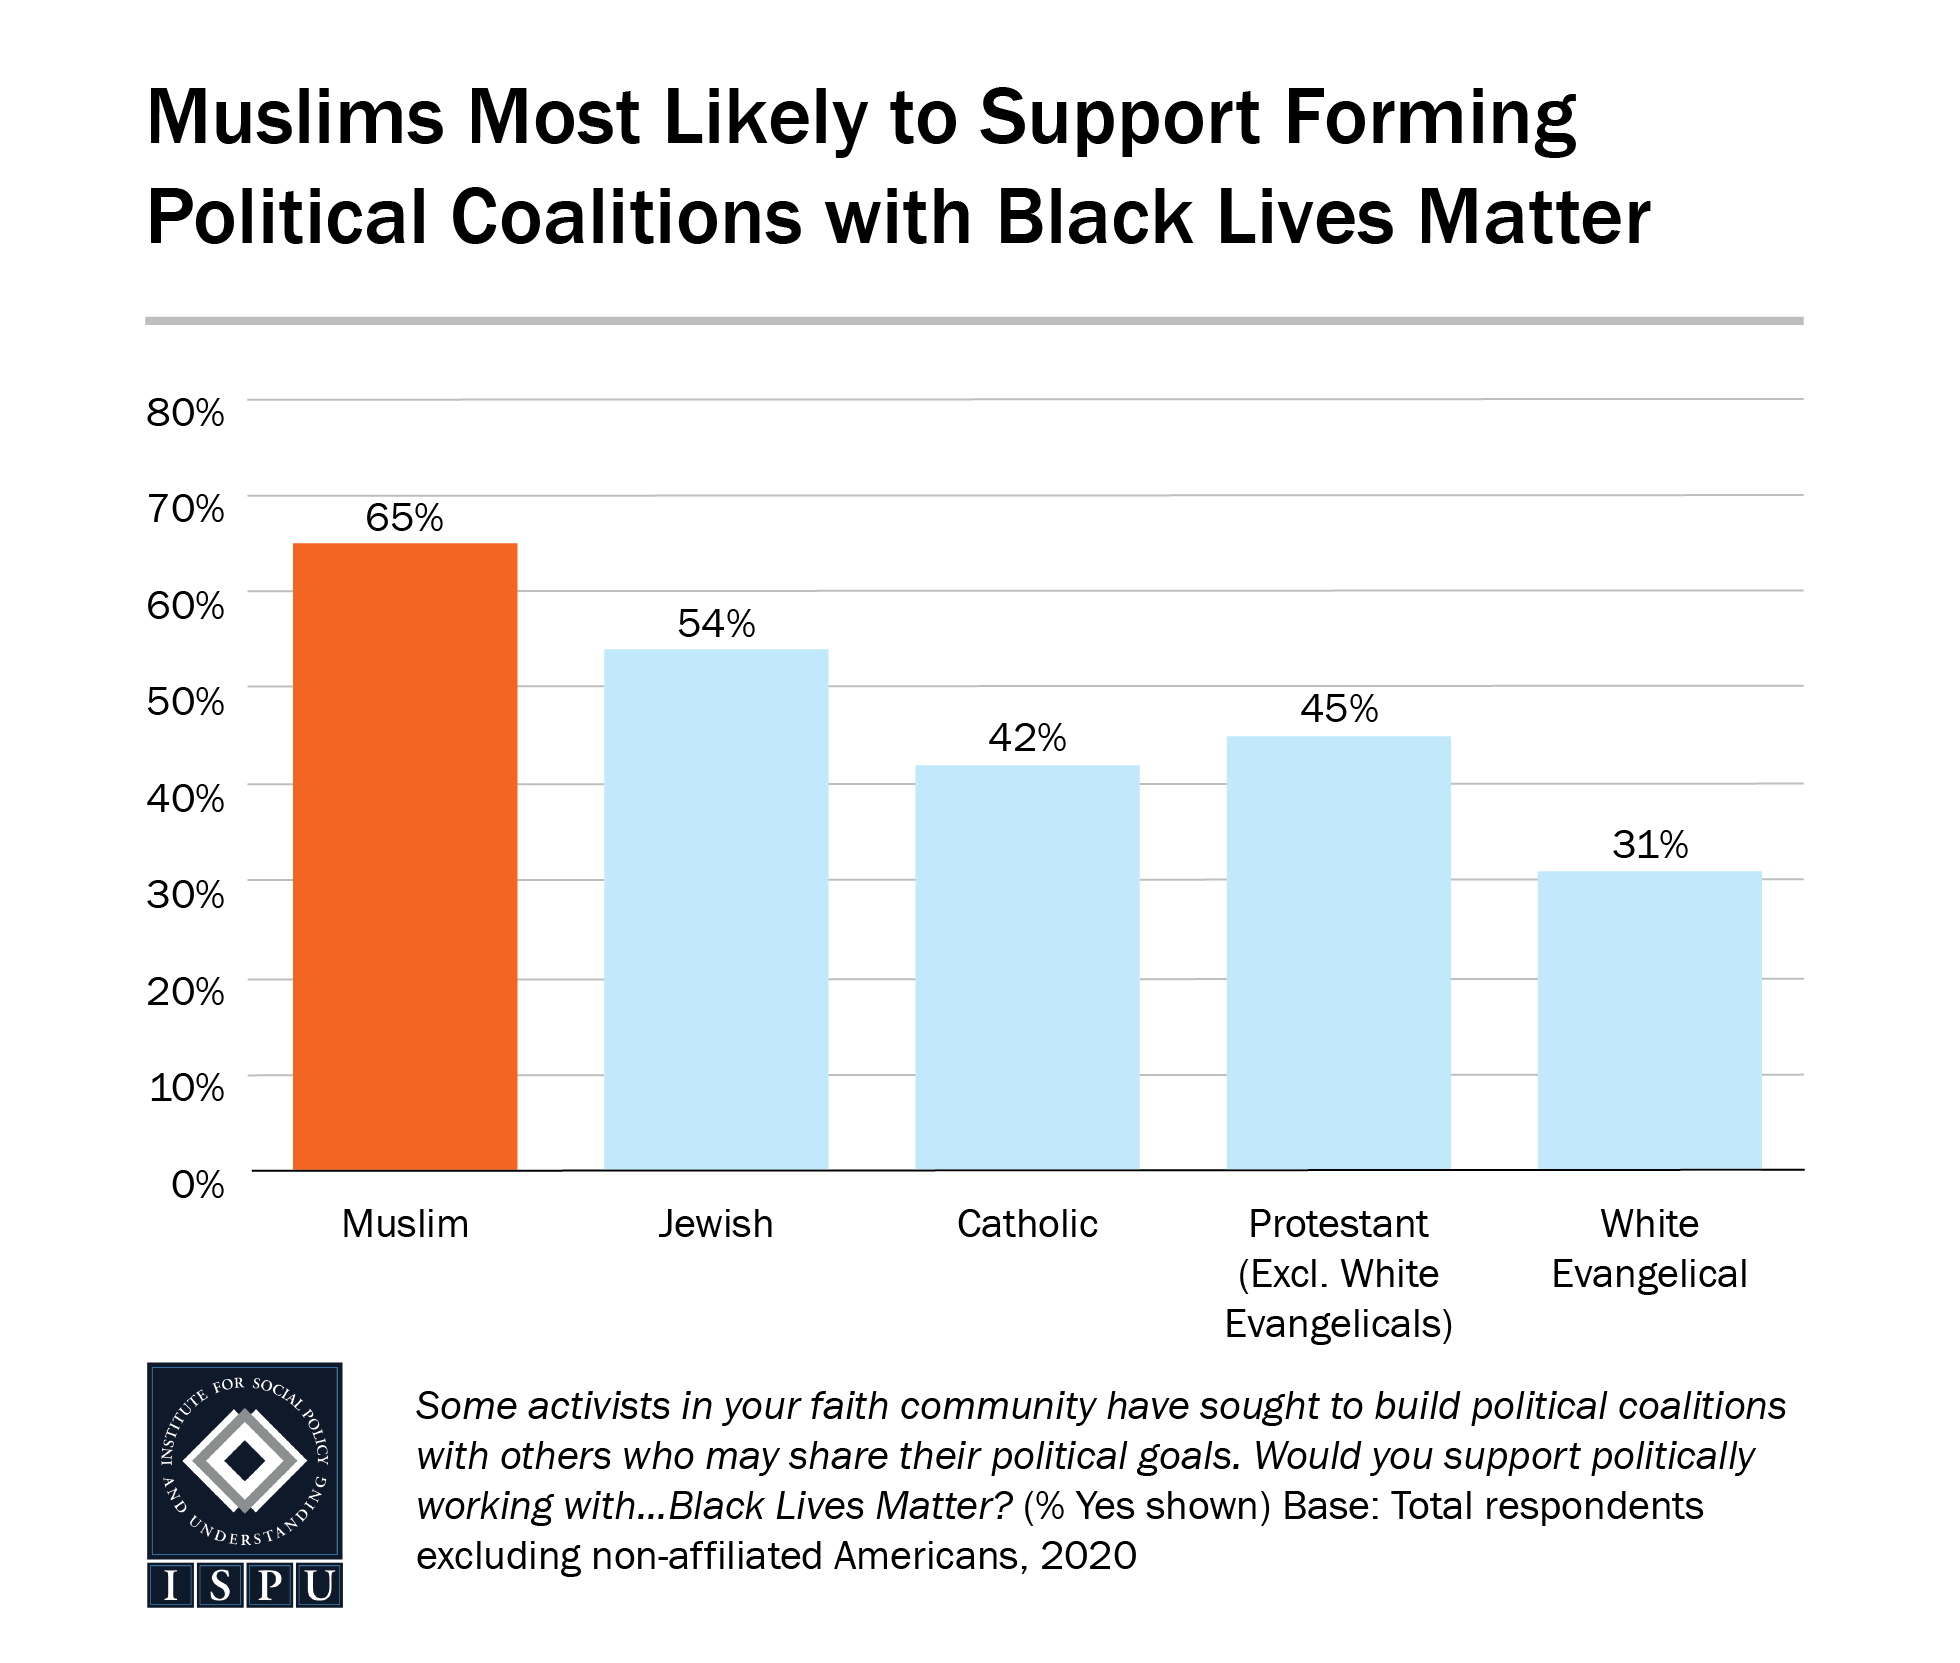 A bar graph showing that Muslims are the most likely faith group in the US to support forming political coalitions with Black Lives Matter